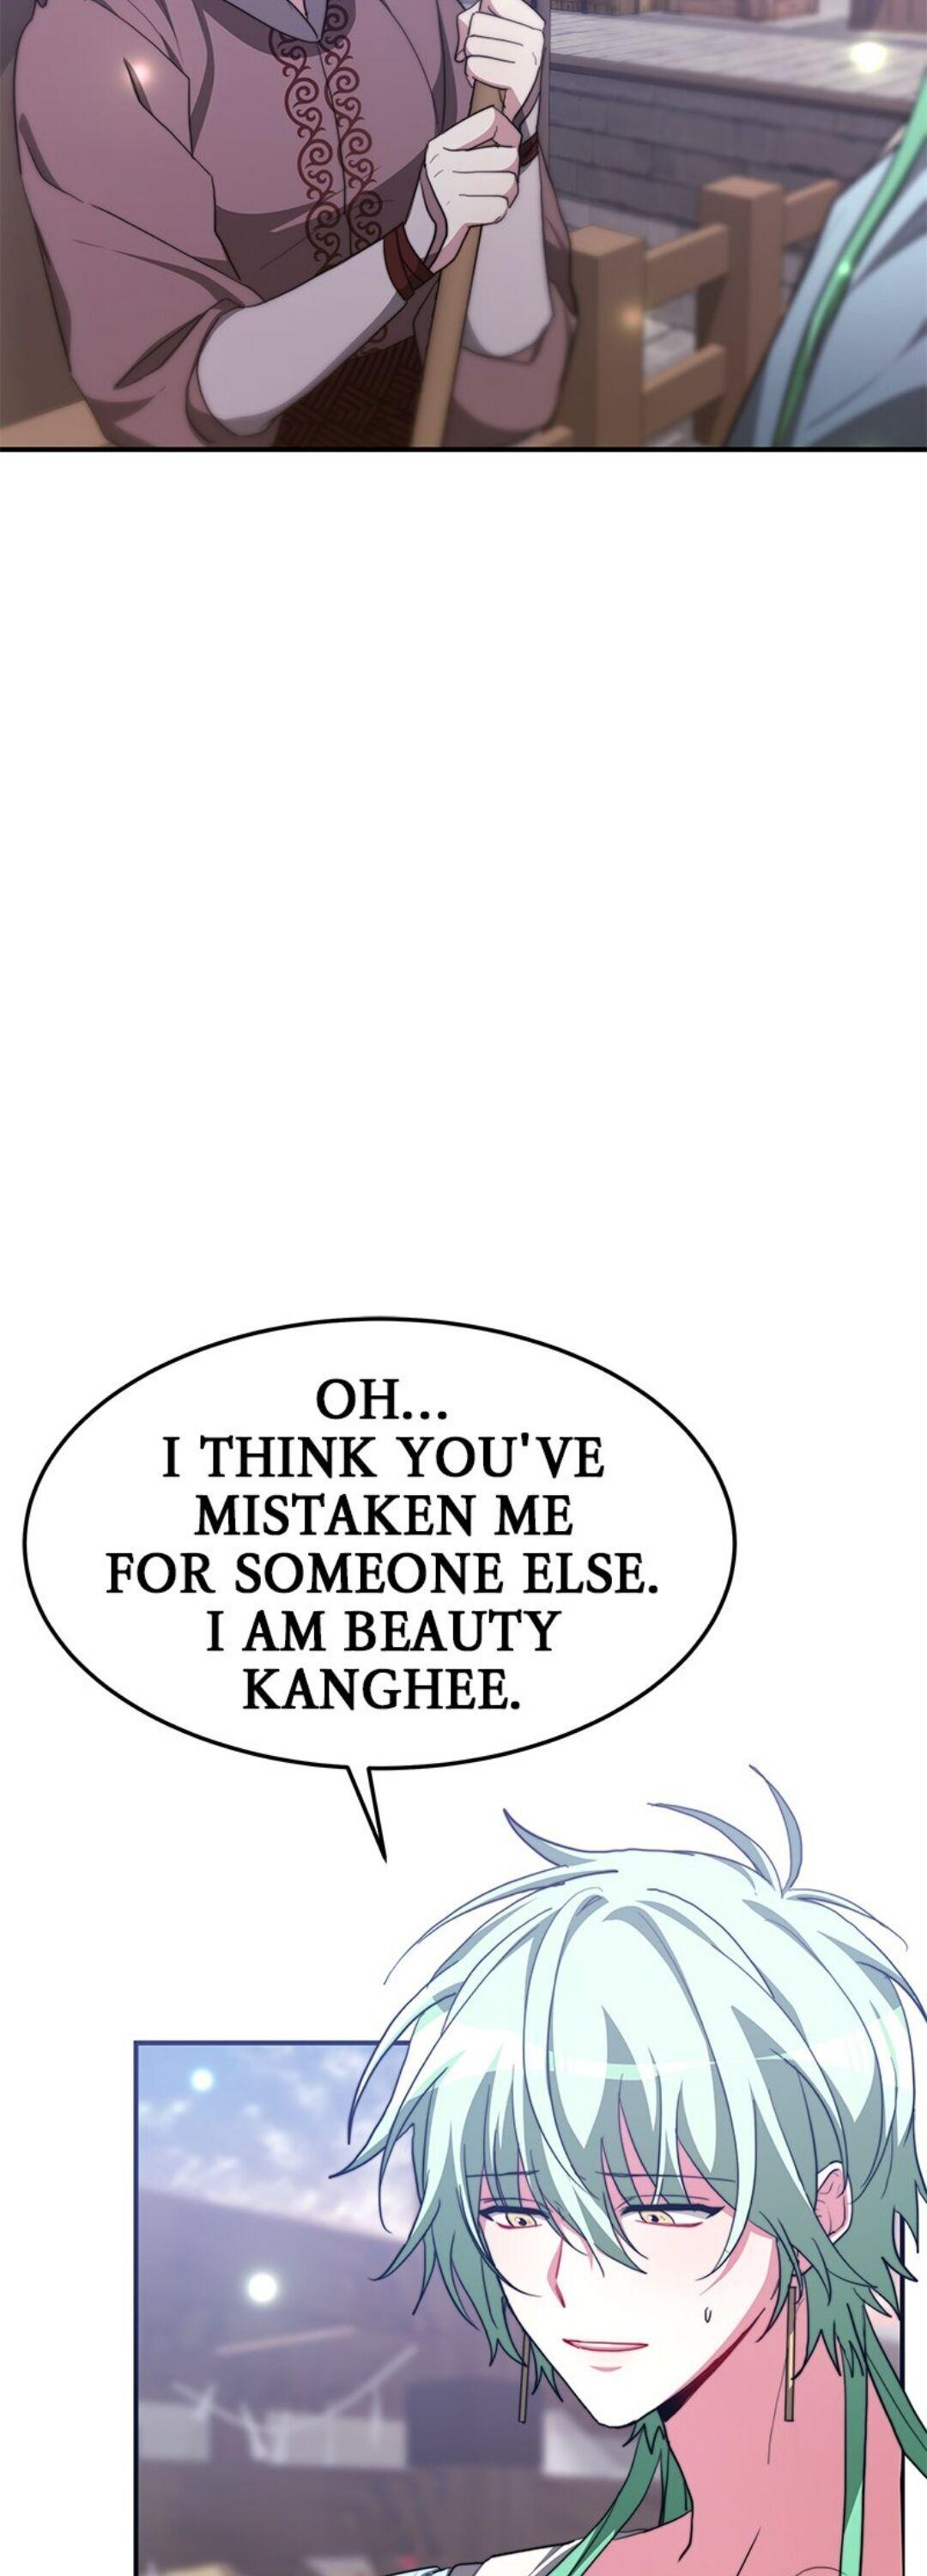 The Red Empress Chapter 27 : The Lion page 10 - Mangakakalots.com